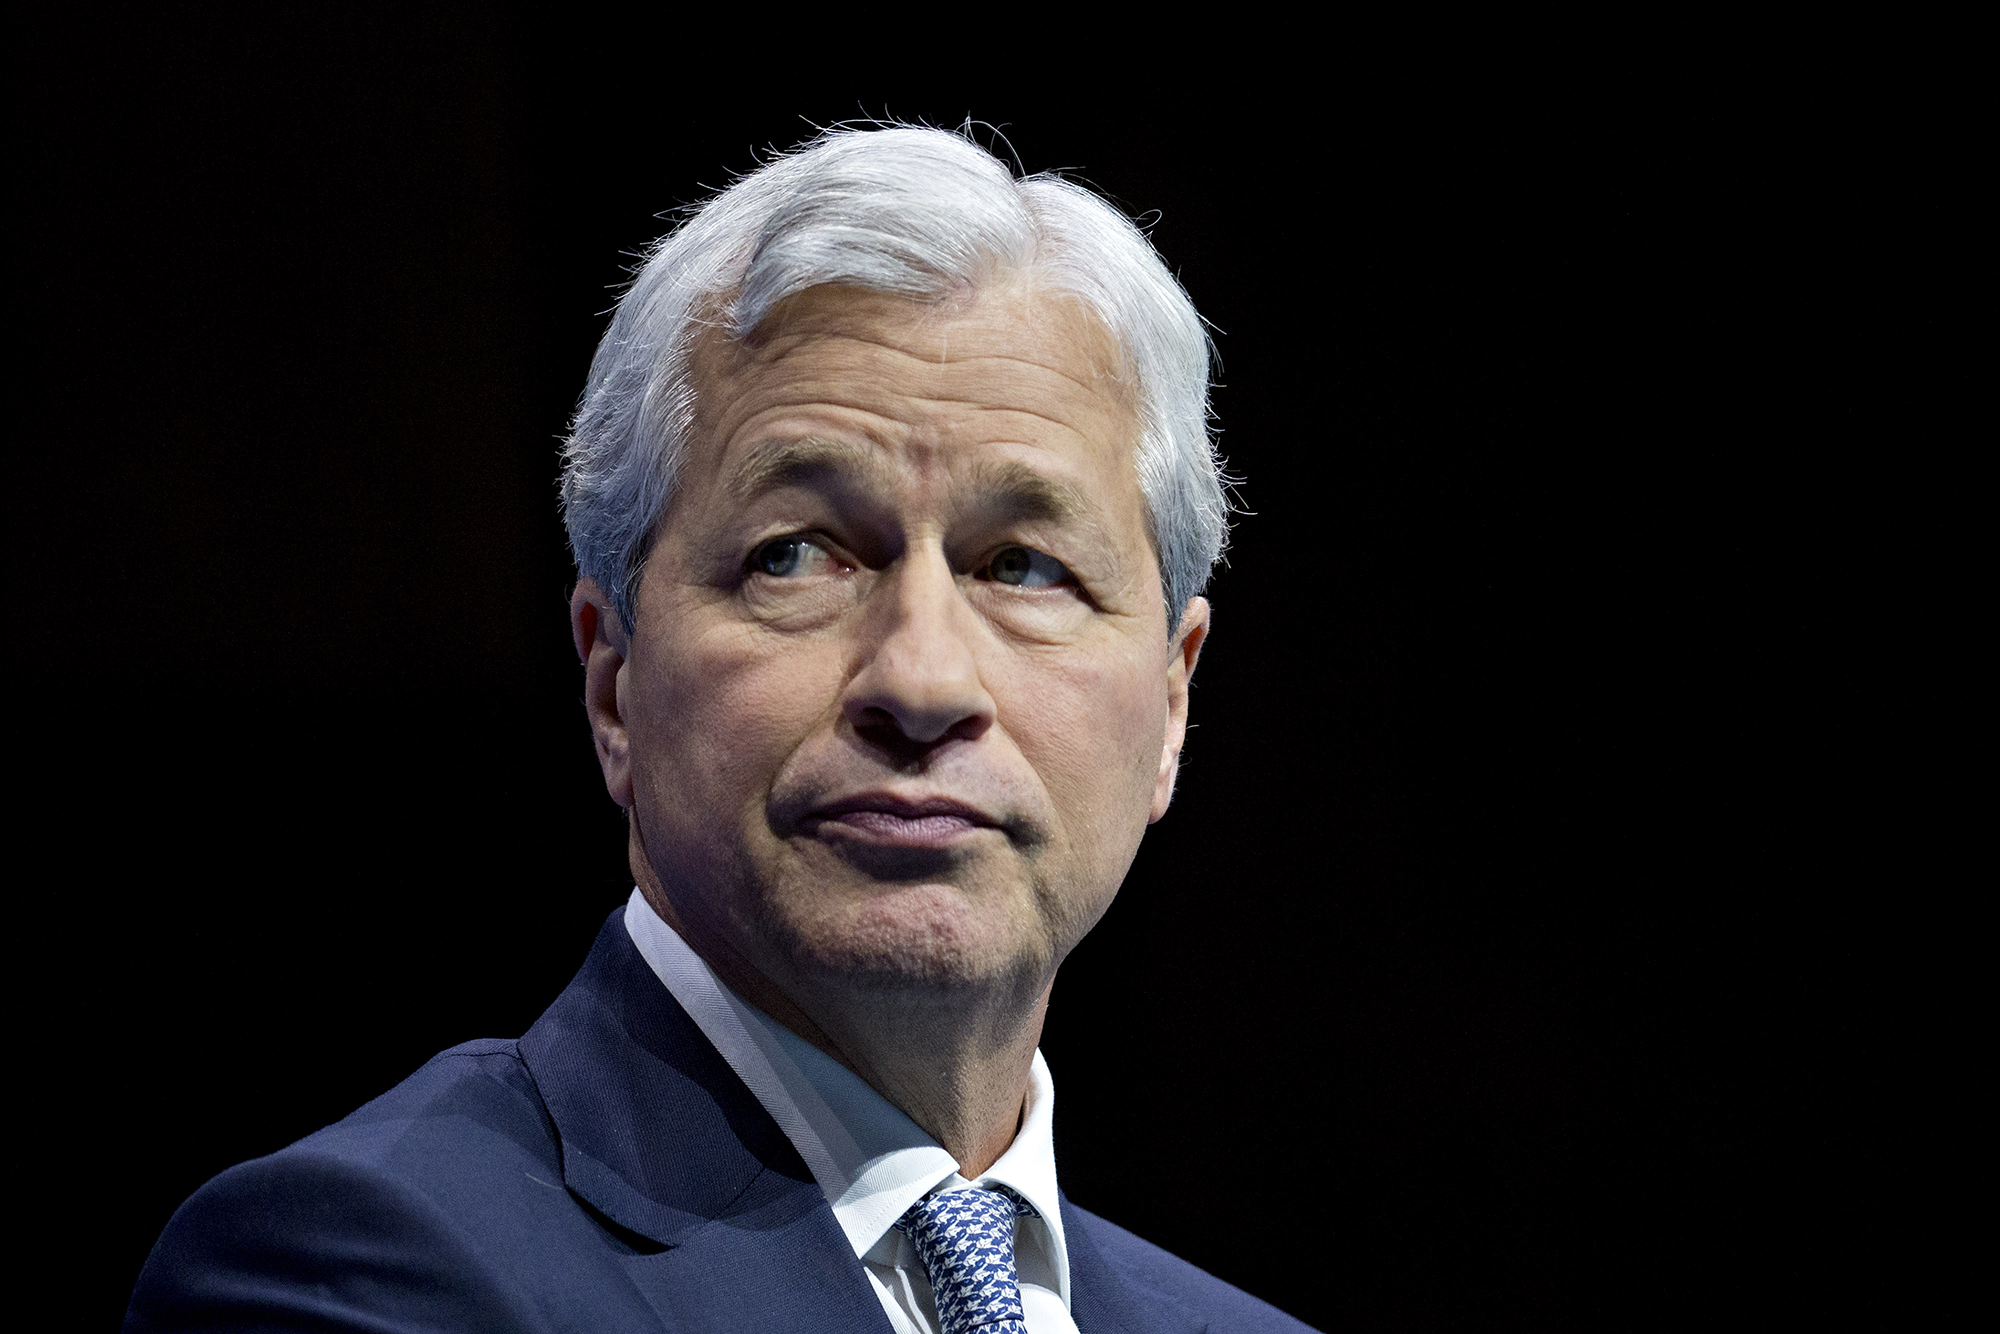 Jamie Dimon says 'American dream is fraying'